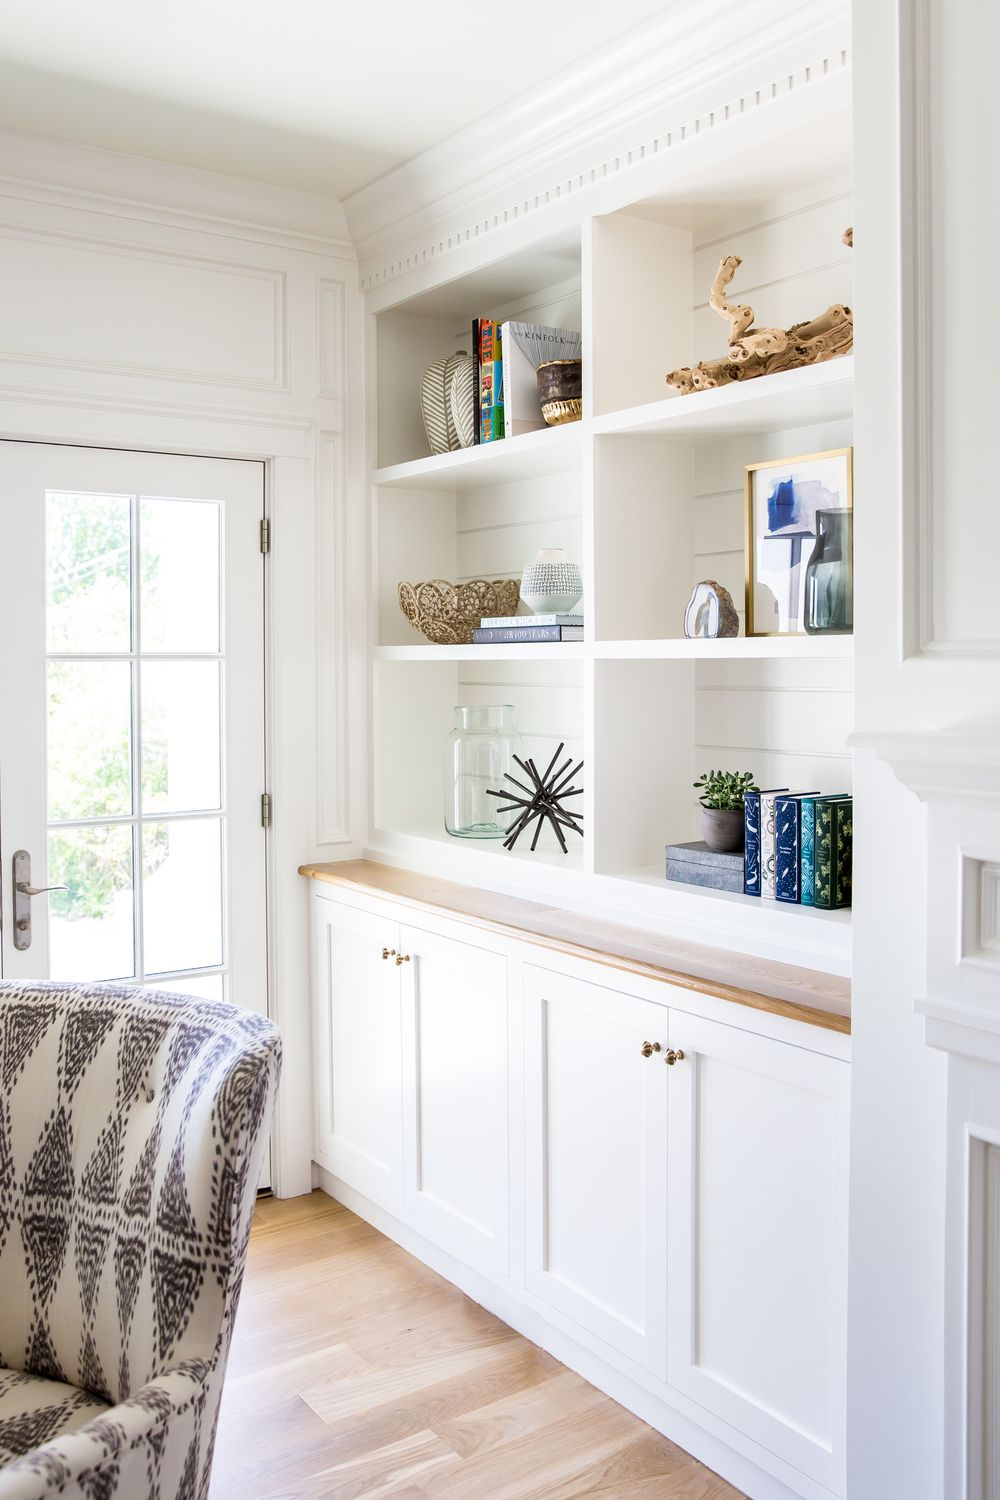 Claybourne project living room coastal style studio mcgee and room arranging white coastal style shelves with accessories amipublicfo Images